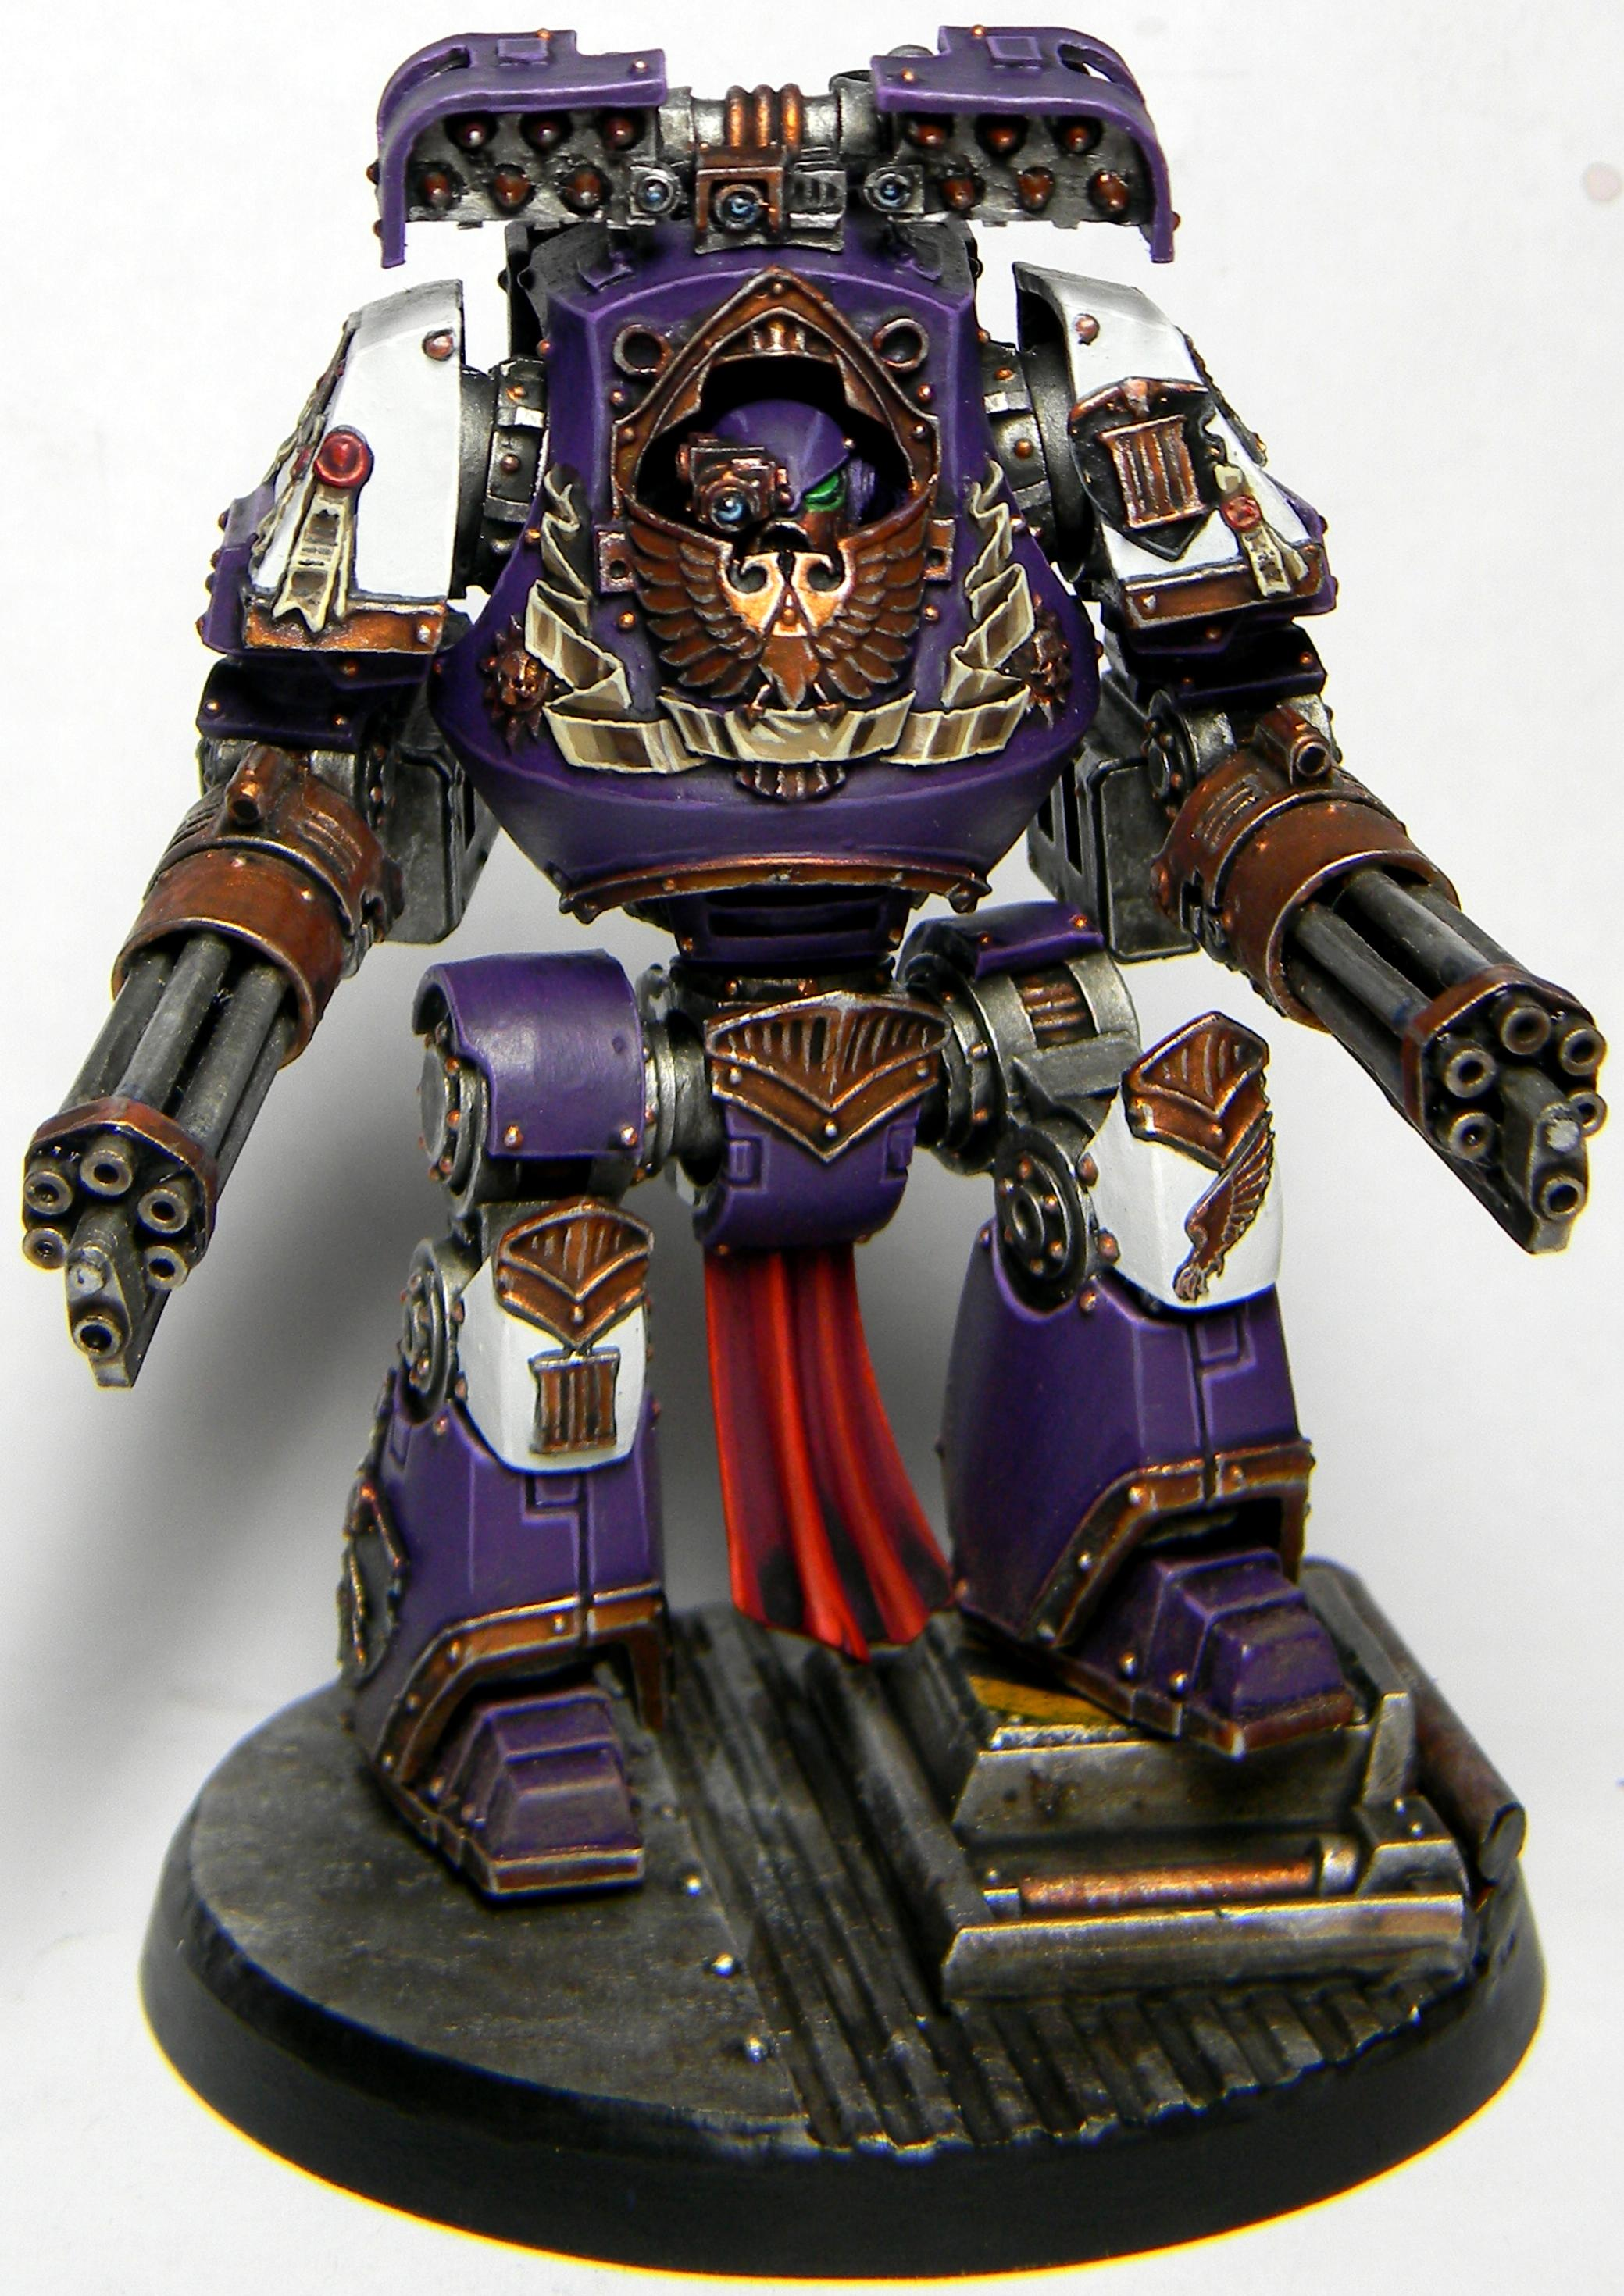 30k, Contemptor, Dreadnought, Emperor's Children, Forge World, Heresy, Horus, Legion, Mortis